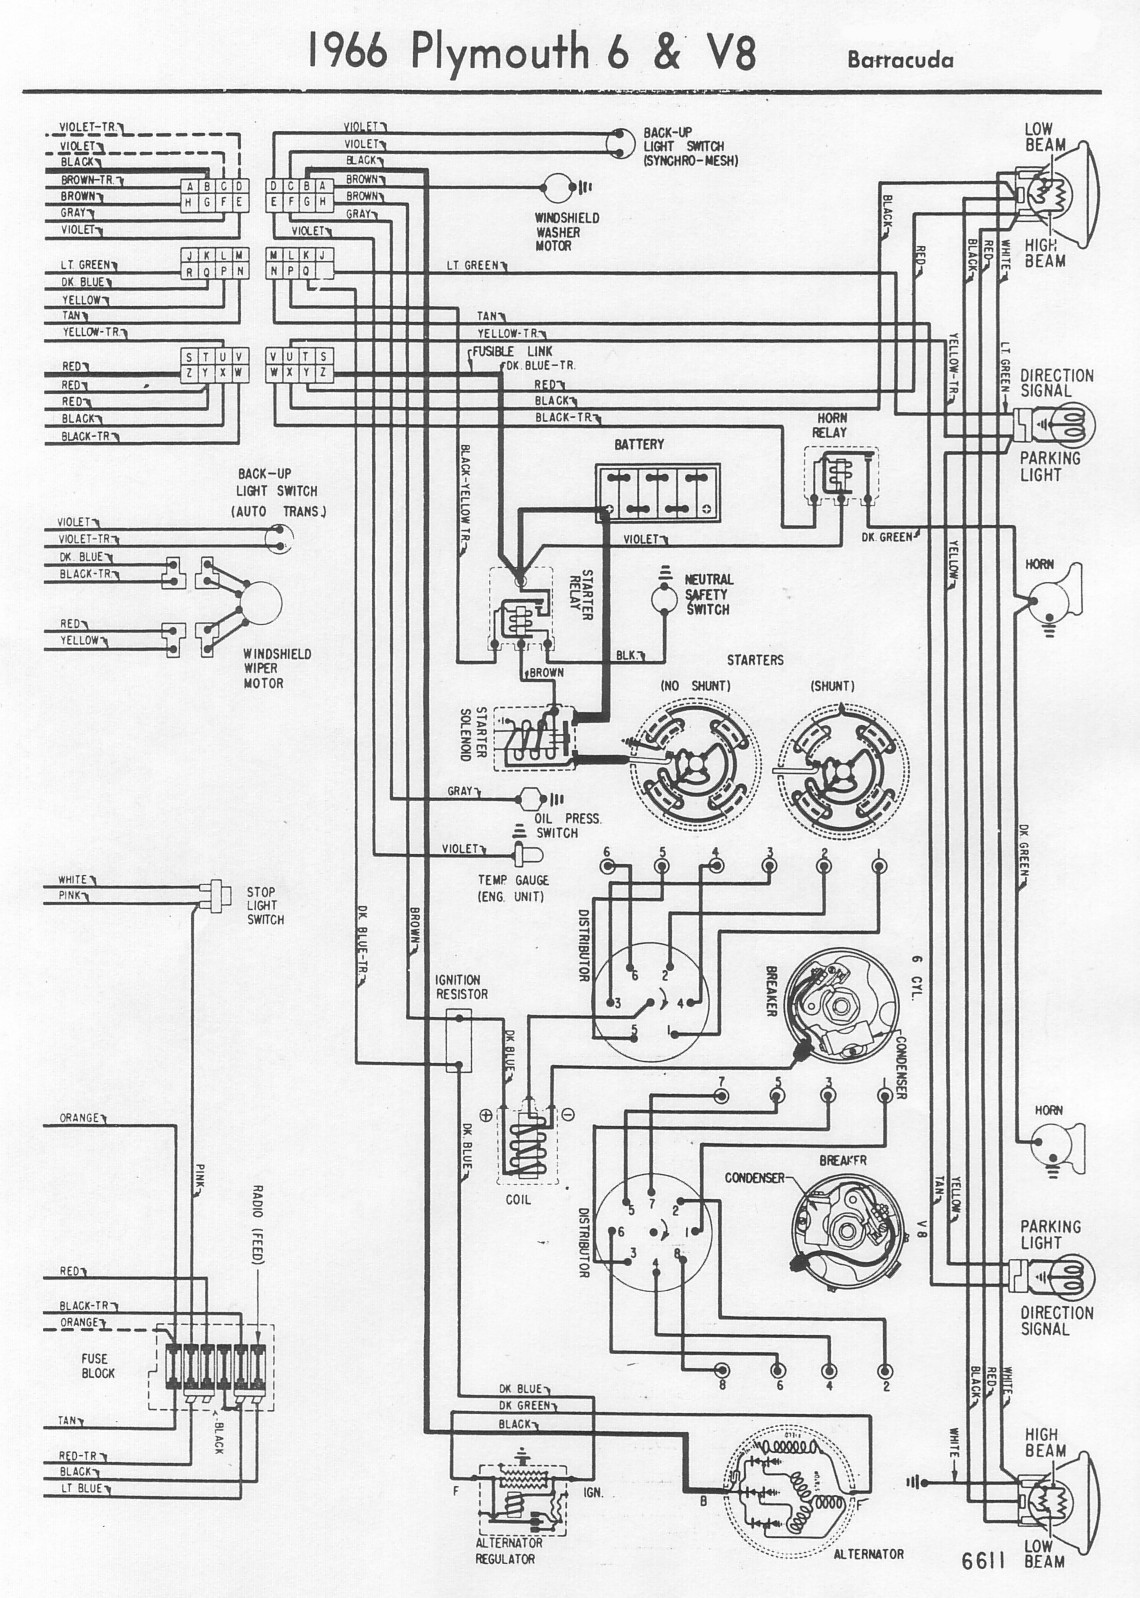 Barracuda Wiring Diagram